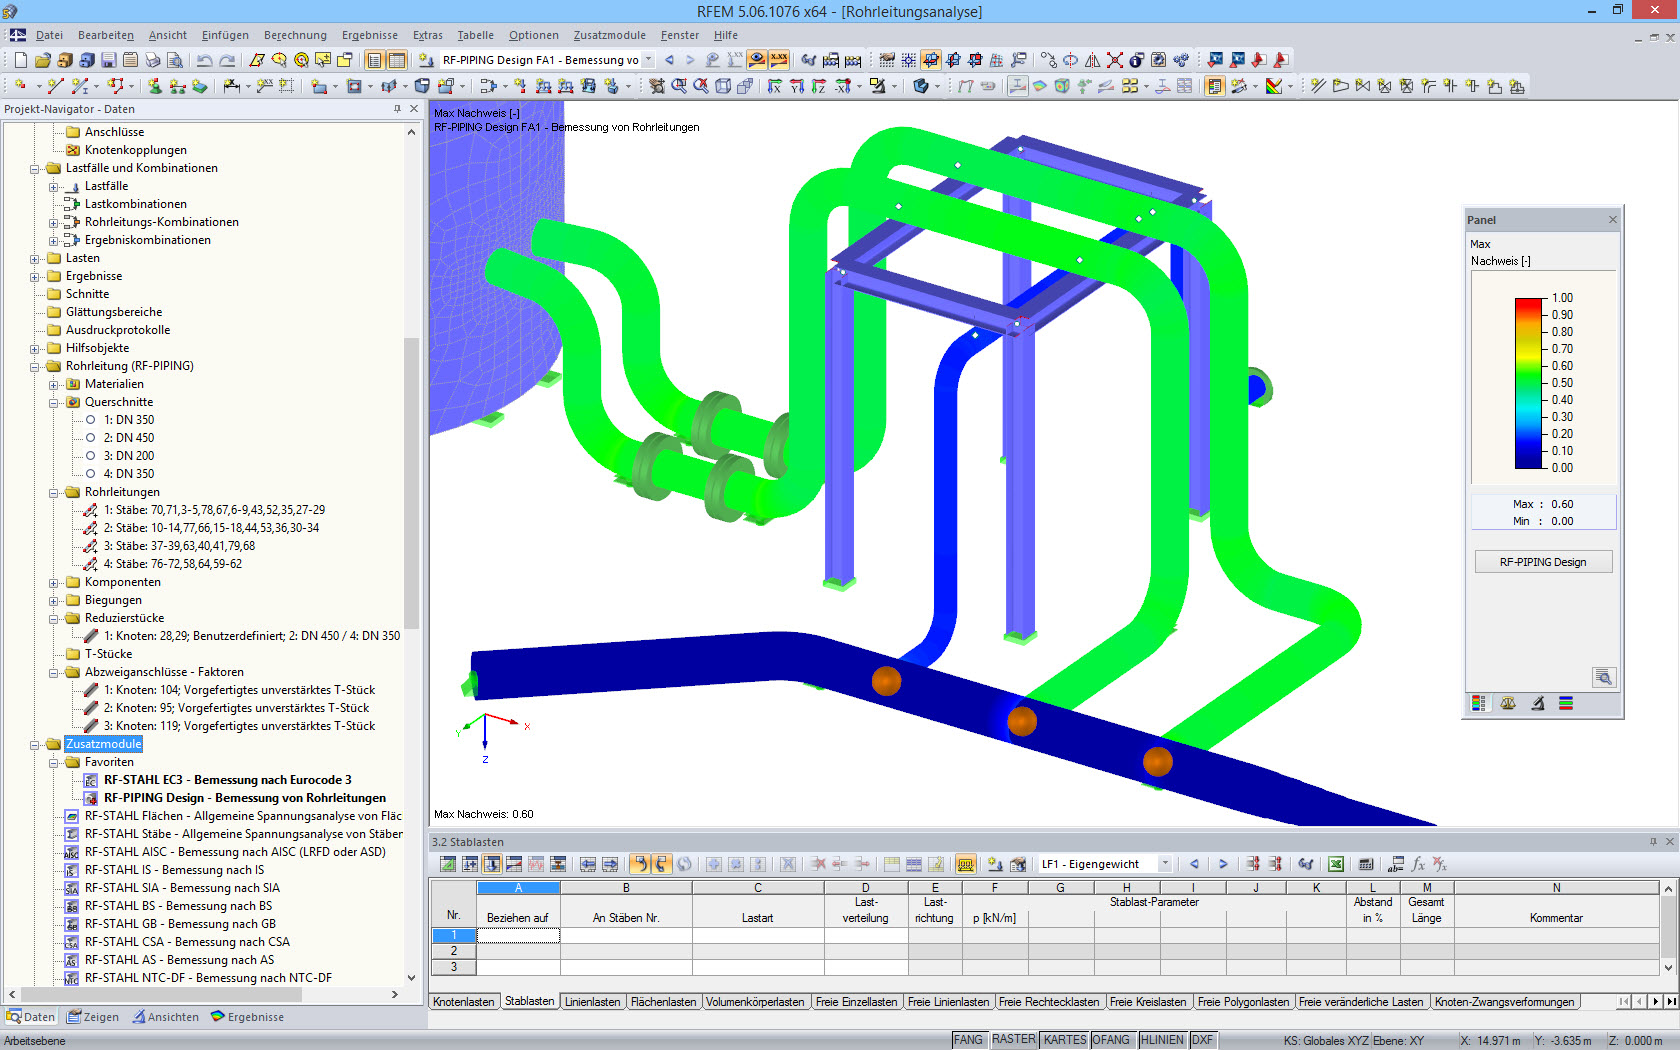 RF-PIPING Design